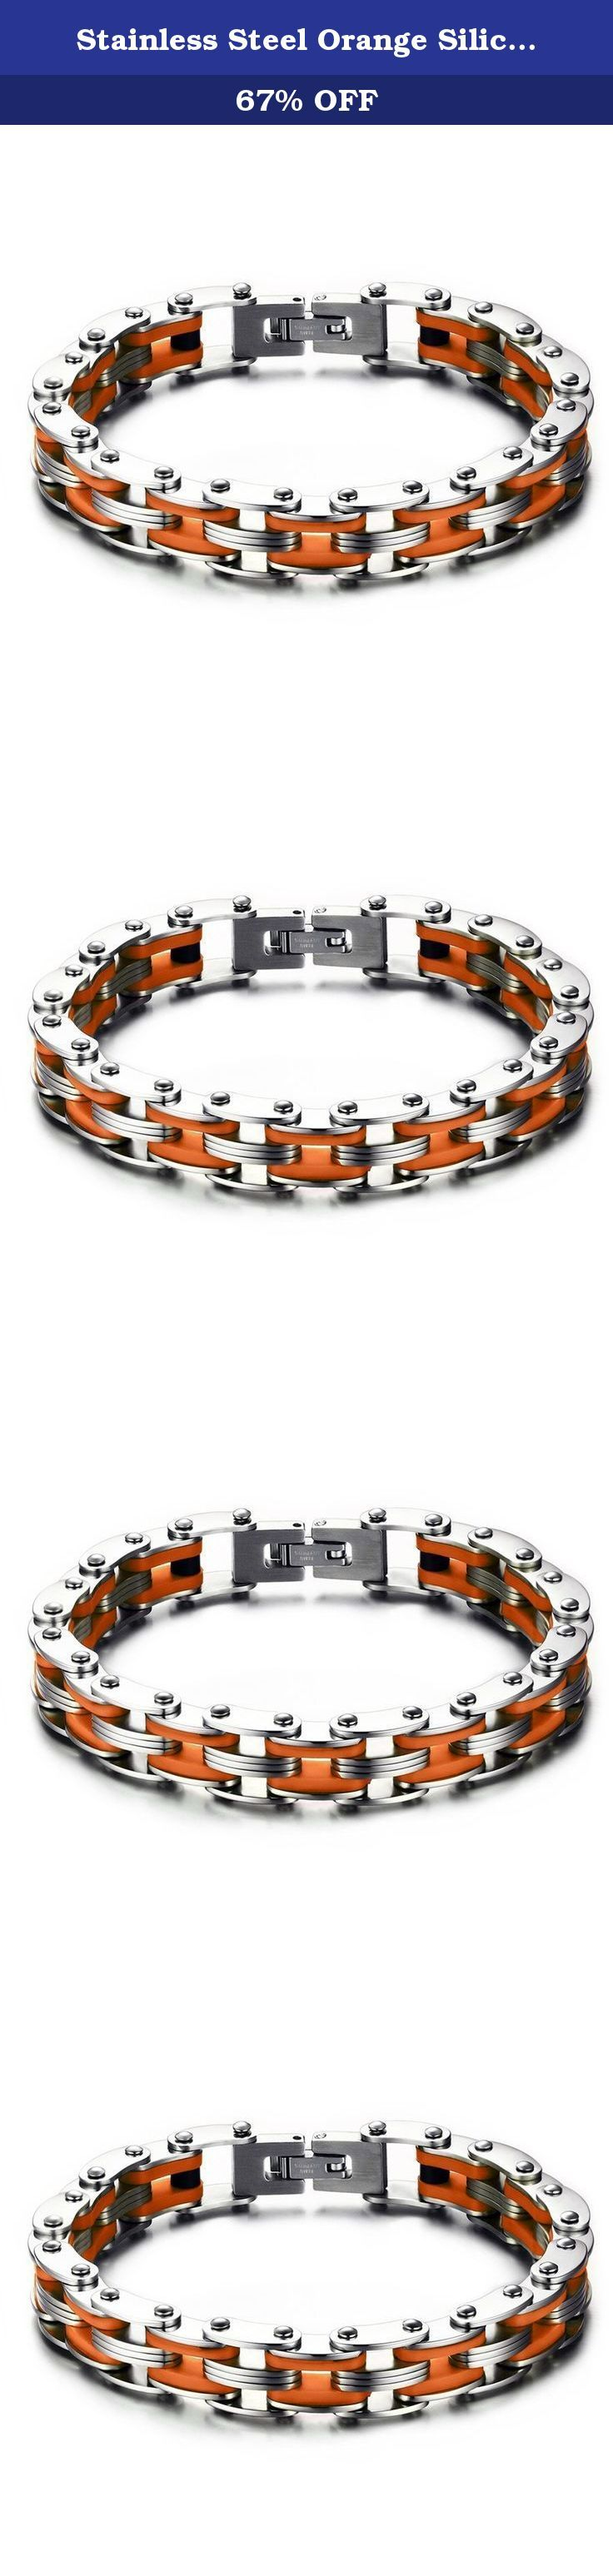 Stainless Steel Orange Silicone Men's Bicycle Bike Chain Bracelet for Men,Bold and Chunky. The Vnox Discover the Vnox of elaborate and fashion jewelry. The high-quality jewelry featured in the Vnox offers great values at affordable Price, they mainly made of high quality Stainless Steel,Tungsten,Alloy and Leather. Find a special gift for a loved one or a beautiful piece that complements your personal style with jewelry from the Vnox. Stainless Steel Stainless steel has increasingly grown…